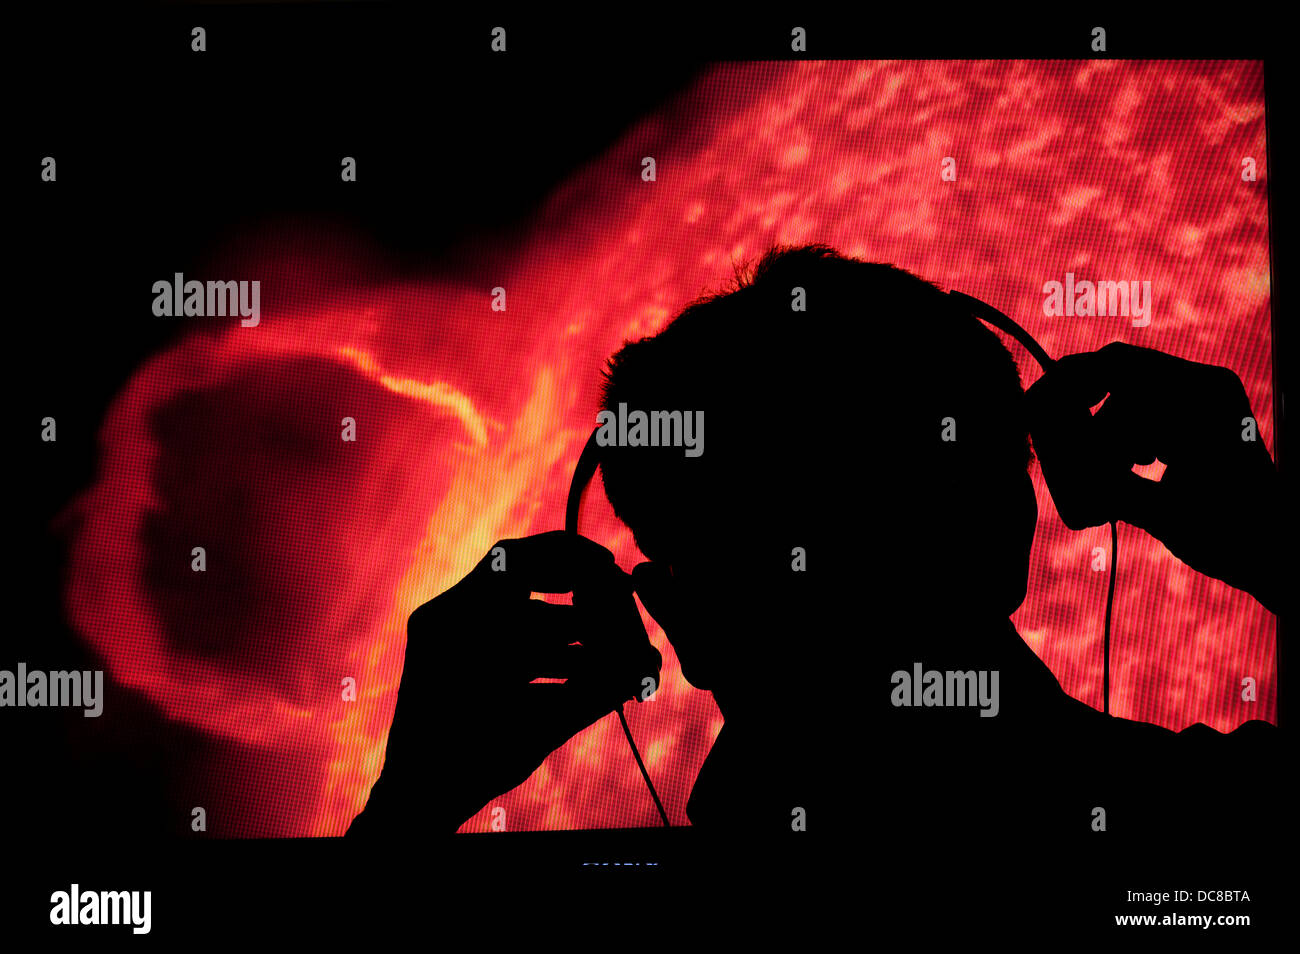 man scientist with headphones monitoring sounds from sun - Stock Image